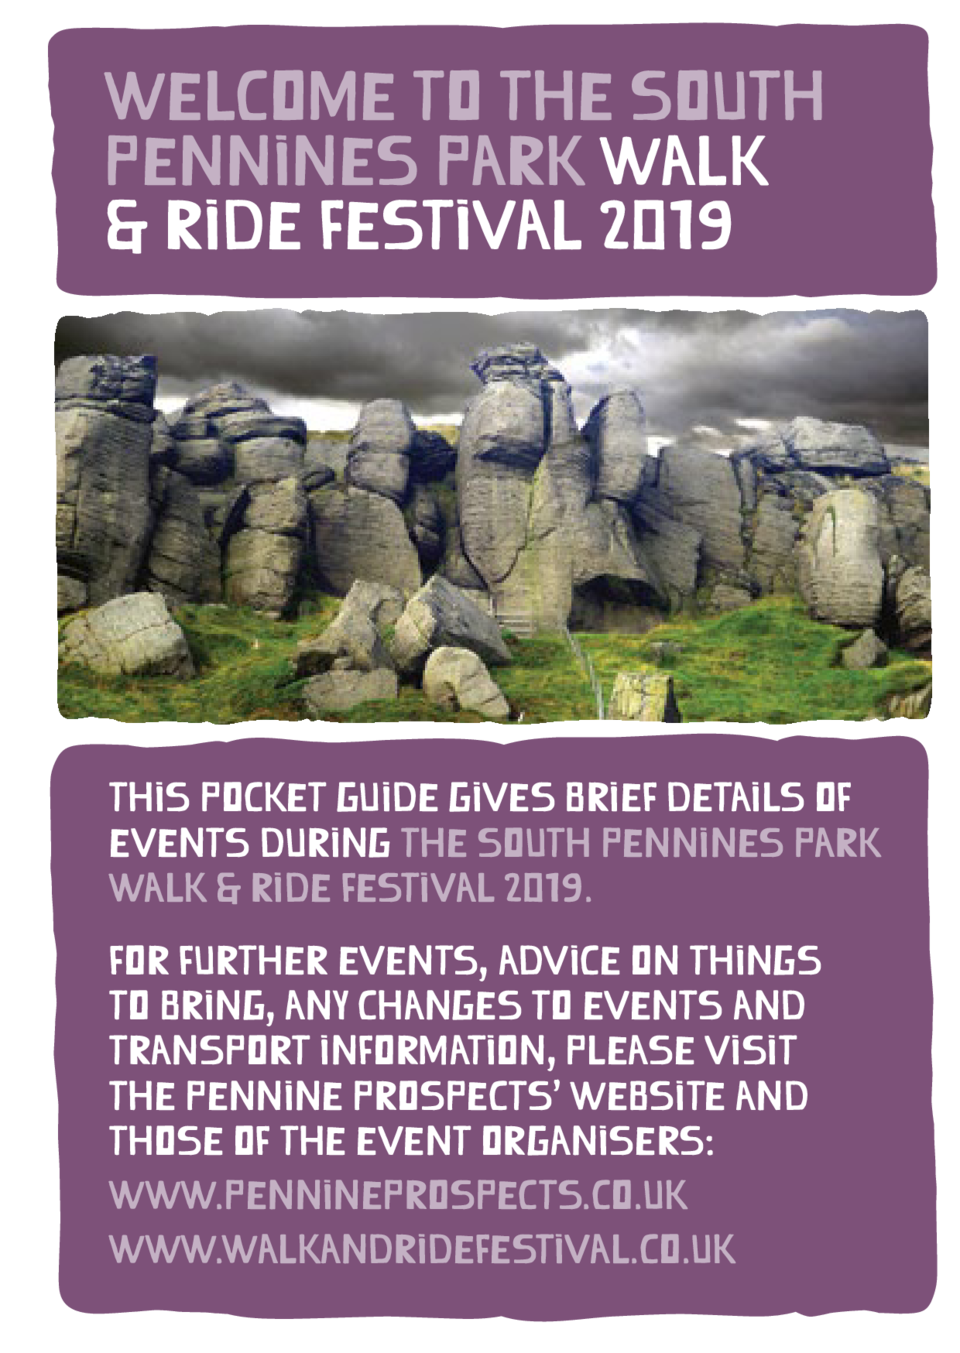 WELCOME TO THE SOUTH PENNINES park WALK   RIDE FESTIVAL 2019  This pocket guide gives brief details of events during the S...